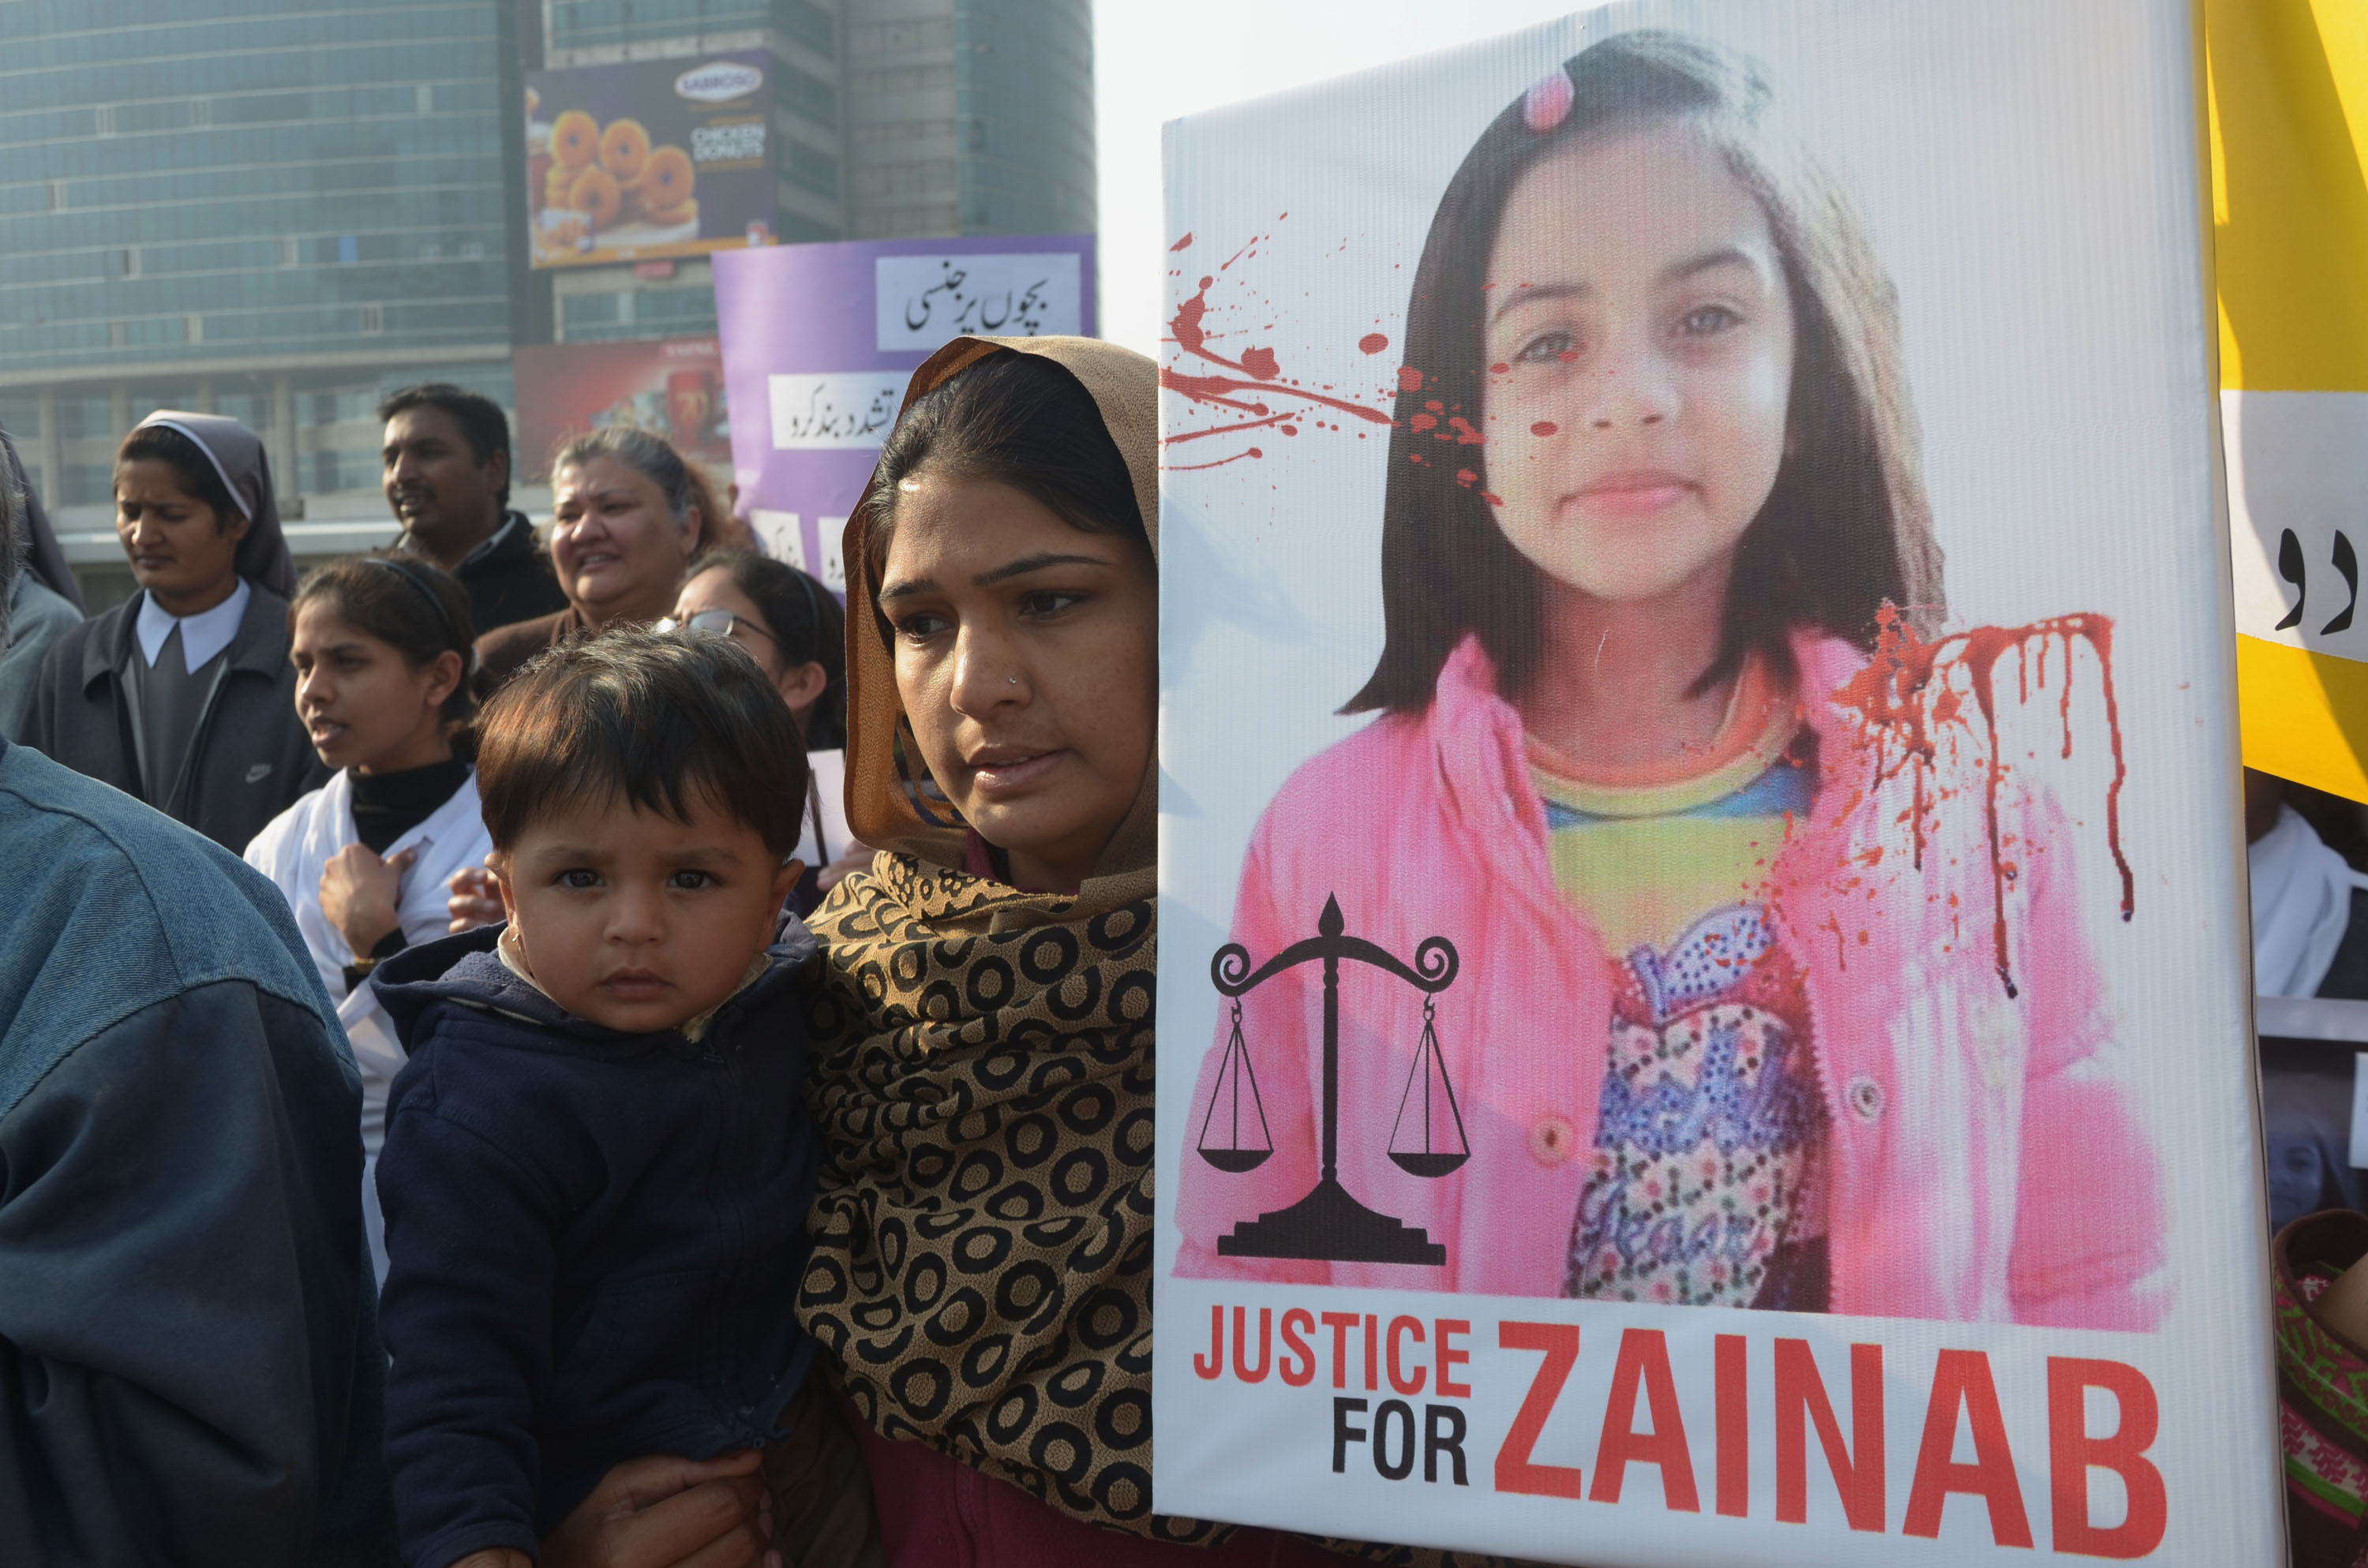 Pakistani Activists of Cecil Chaudhry and Iris Foundation (CCIF) holding placards chant slogans to protest the rape and murder of seven year old Zainab Ansari in Kasur District at Liberty Chowk in Lahore on January 14, 2018. Hundreds of protesters enraged over the murder of a young girl threw stones at government buildings in a Pakistani city near the Indian border for a second day January 11, amid growing outrage over the killing.